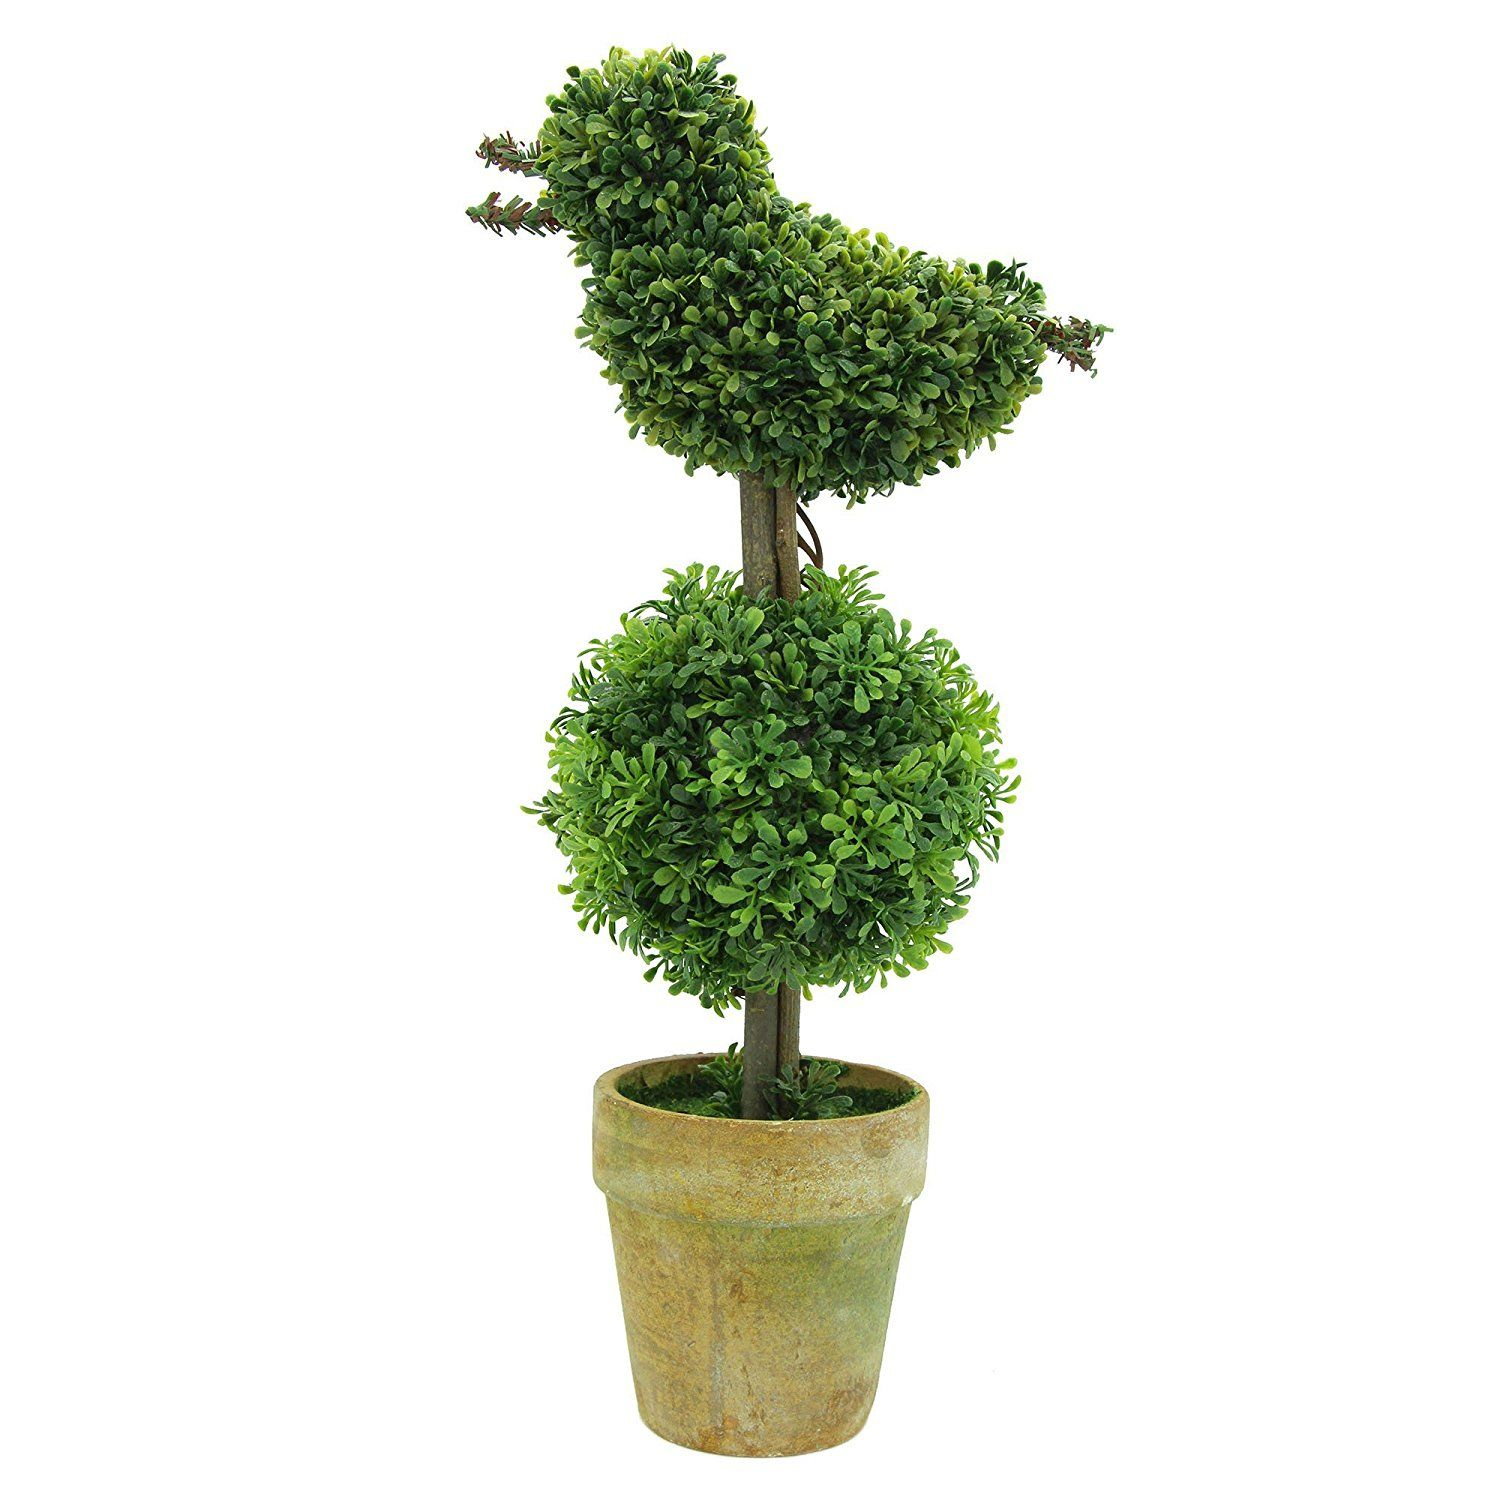 artificial plants for office decor. Keelorn Cute Bird Shape Greenery Artificial Plants And Trees , Decor Bonsai For Office Home Decorations Indoor Outdoor ( 14 Inches Green ) A